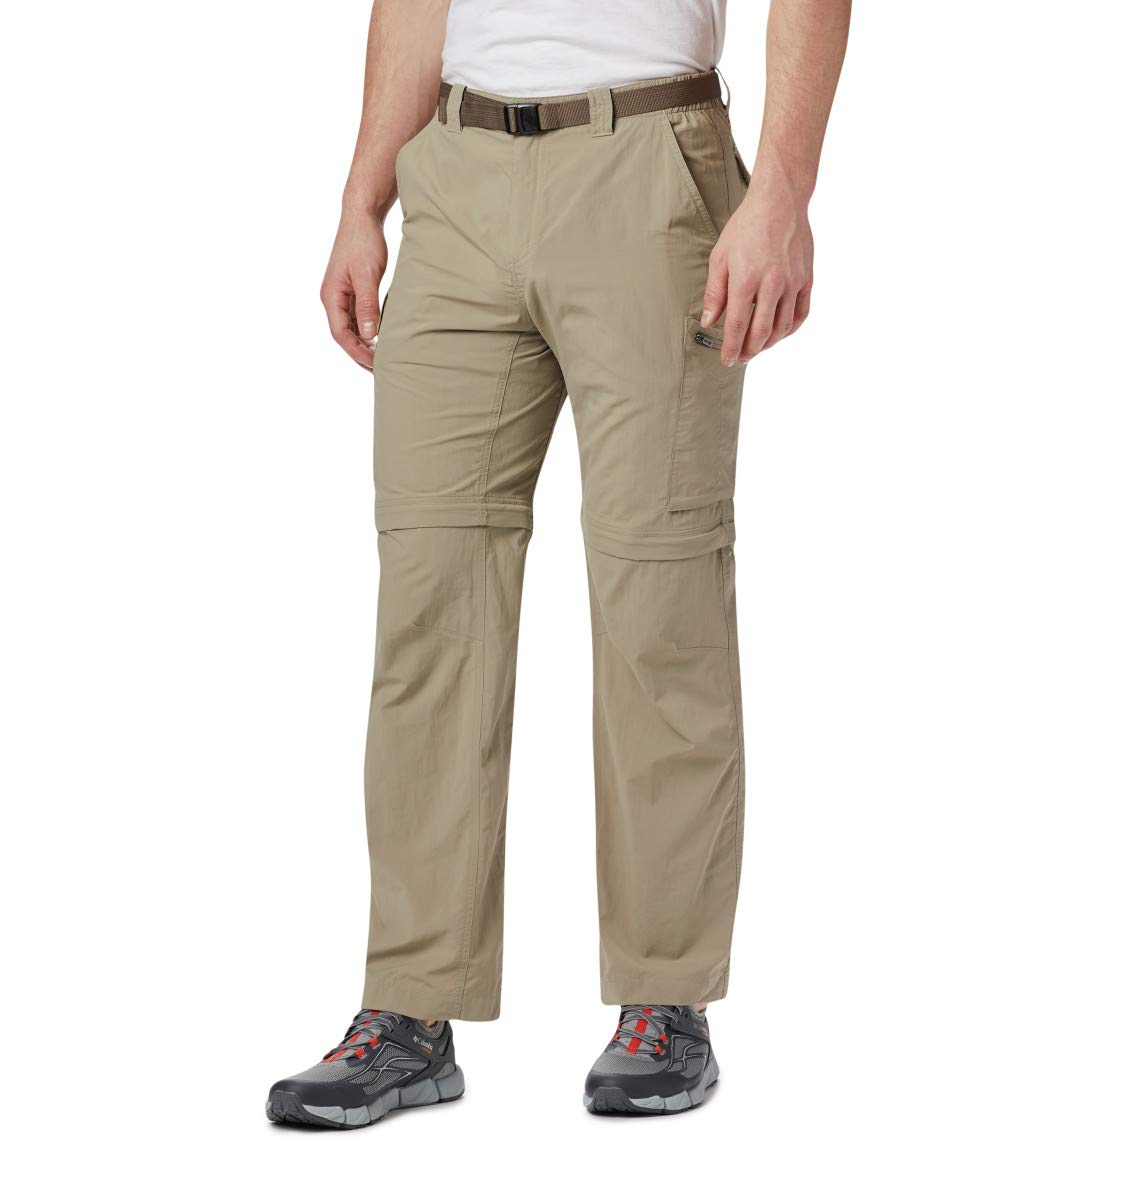 Columbia Men's Silver Ridge Convertible Pant, Breathable, UPF 50 Sun Protection, Tusk, 36x30 by Columbia